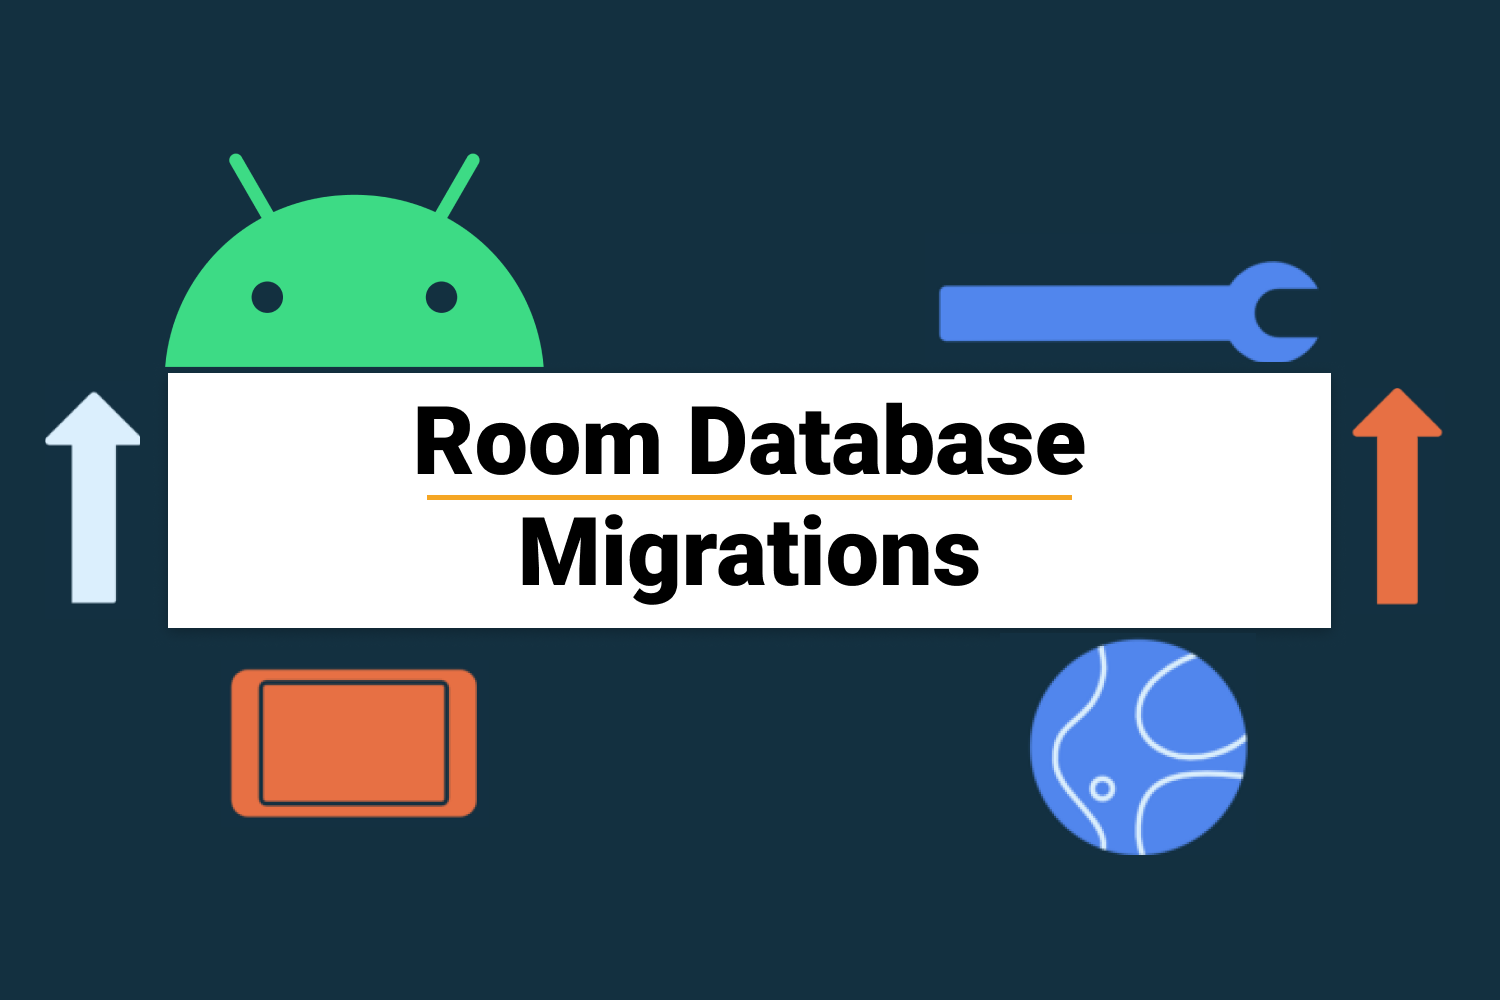 Room Database Migrations